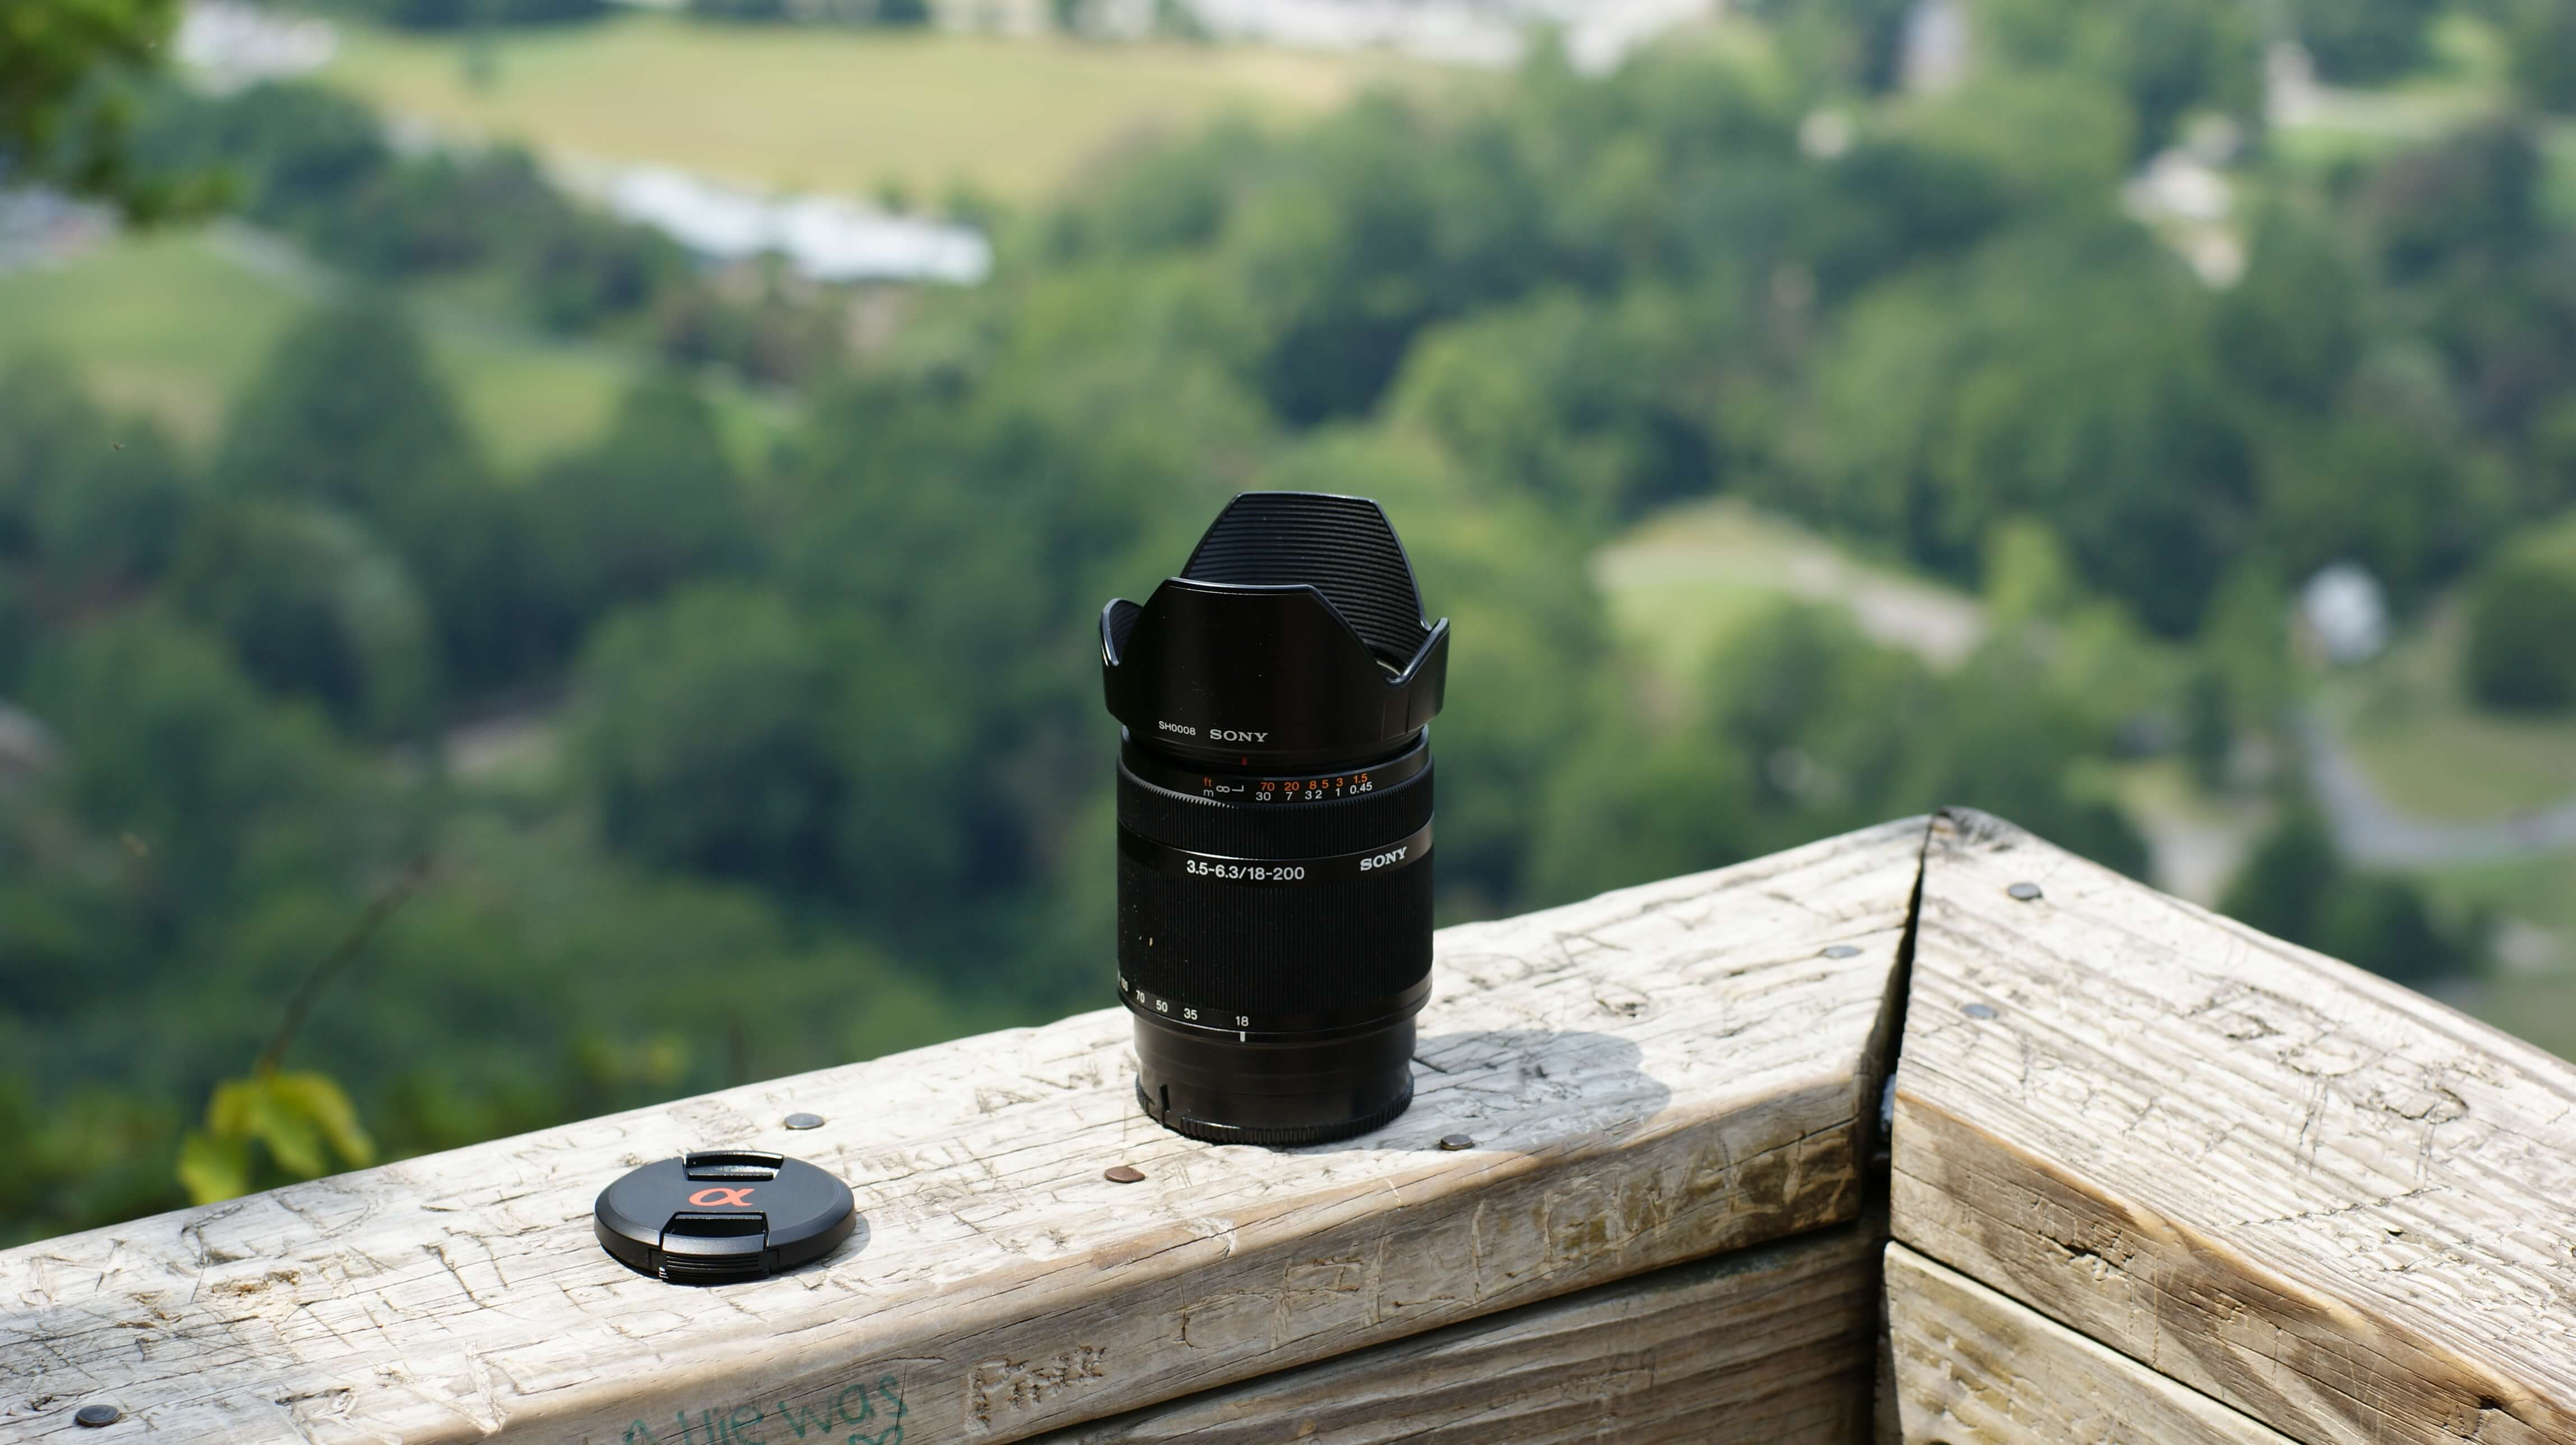 Sony 18-200mm F3.5-6.3 lens preview